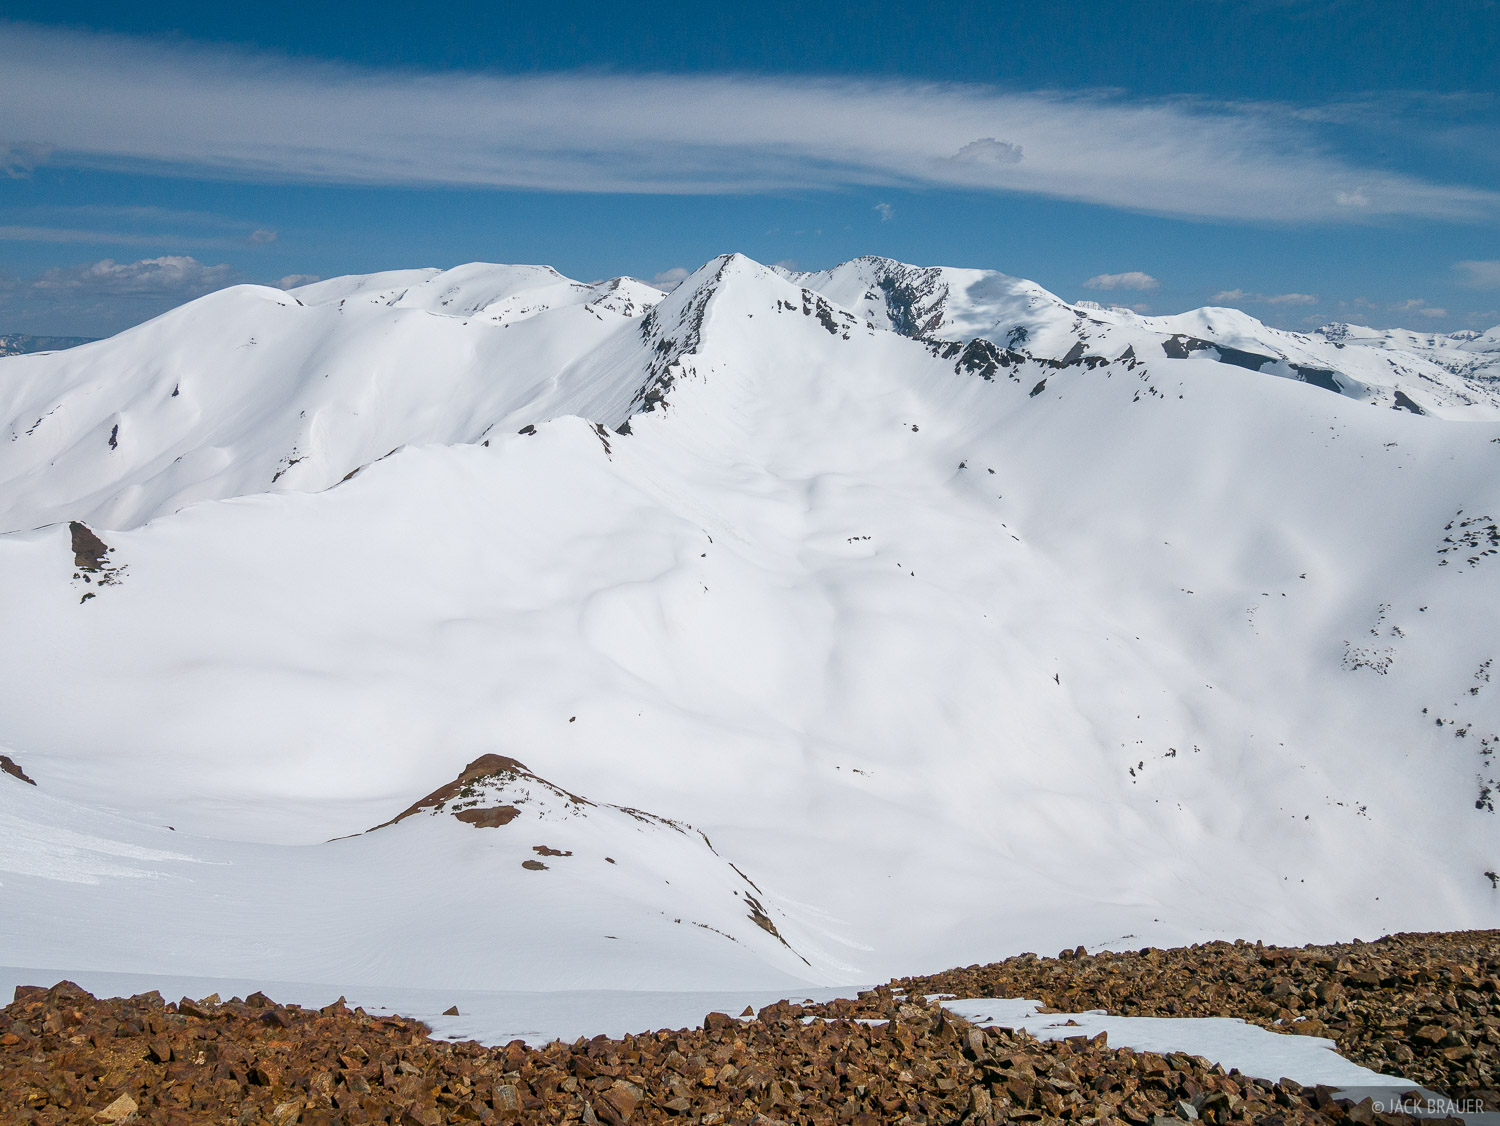 The snow smothered south face of Purple Mountain (12,958 ft.) in late May.